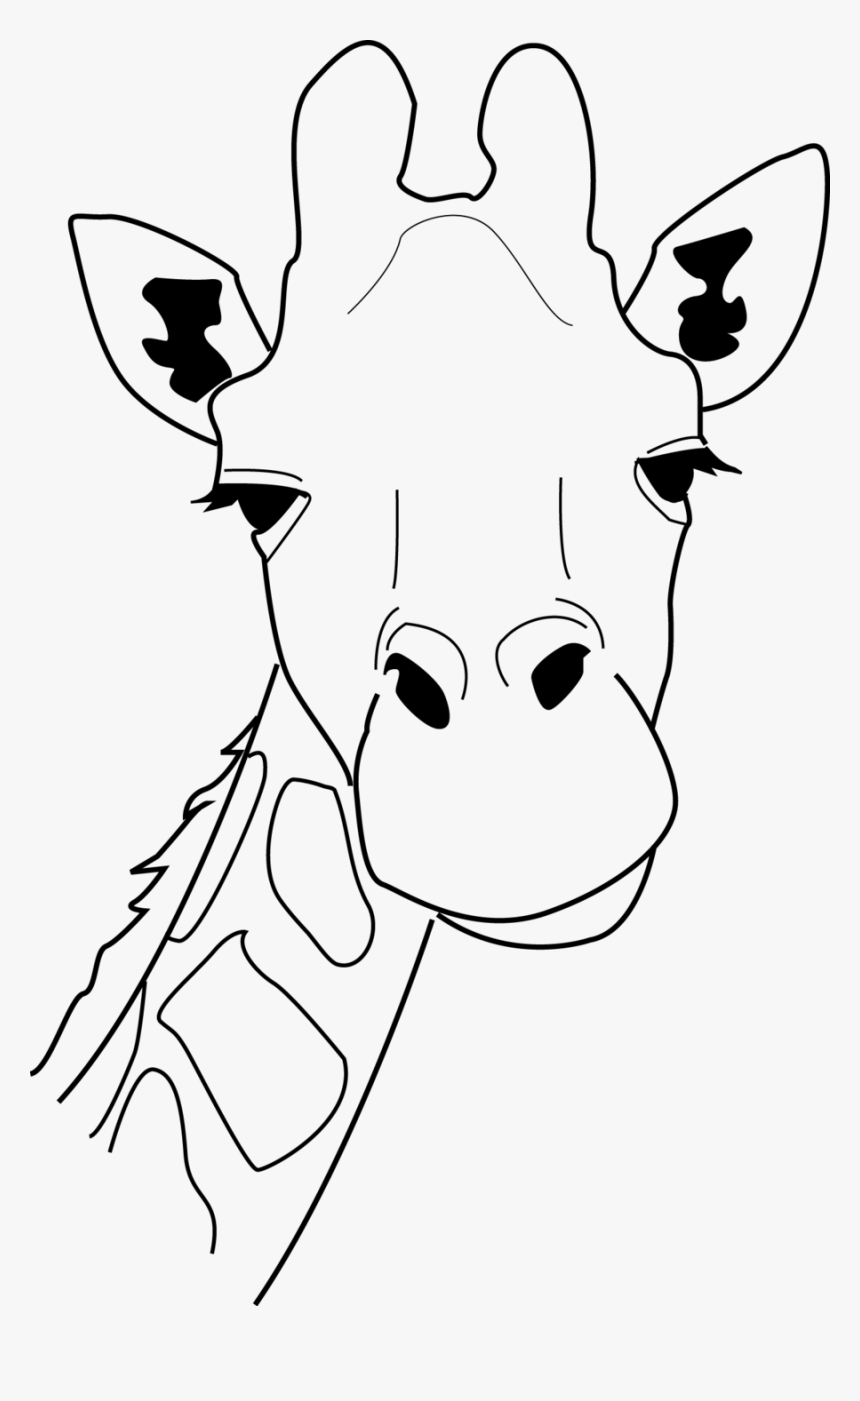 - Giraffe Head Line Drawing 241412 900×1,425 Pixels - Giraffe Head